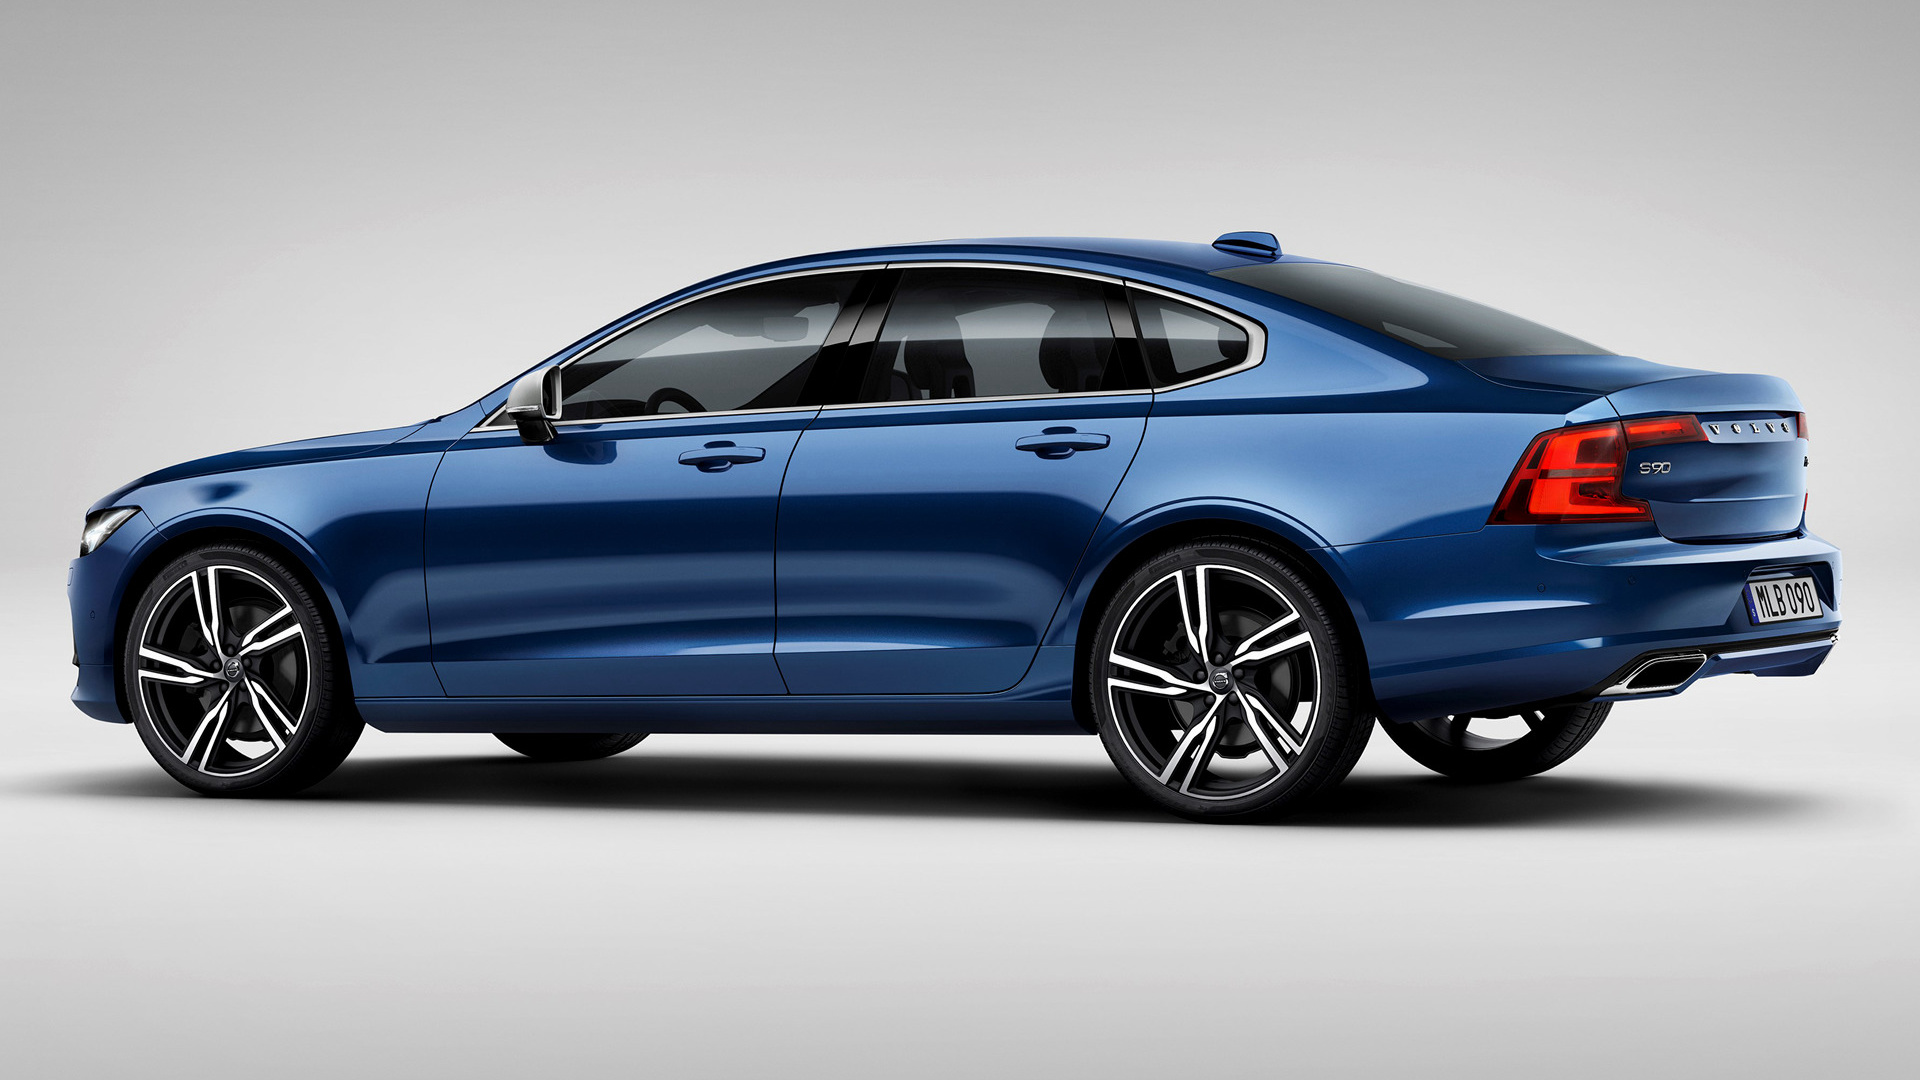 Volvo S90 R-Design (2016) Wallpapers and HD Images - Car Pixel